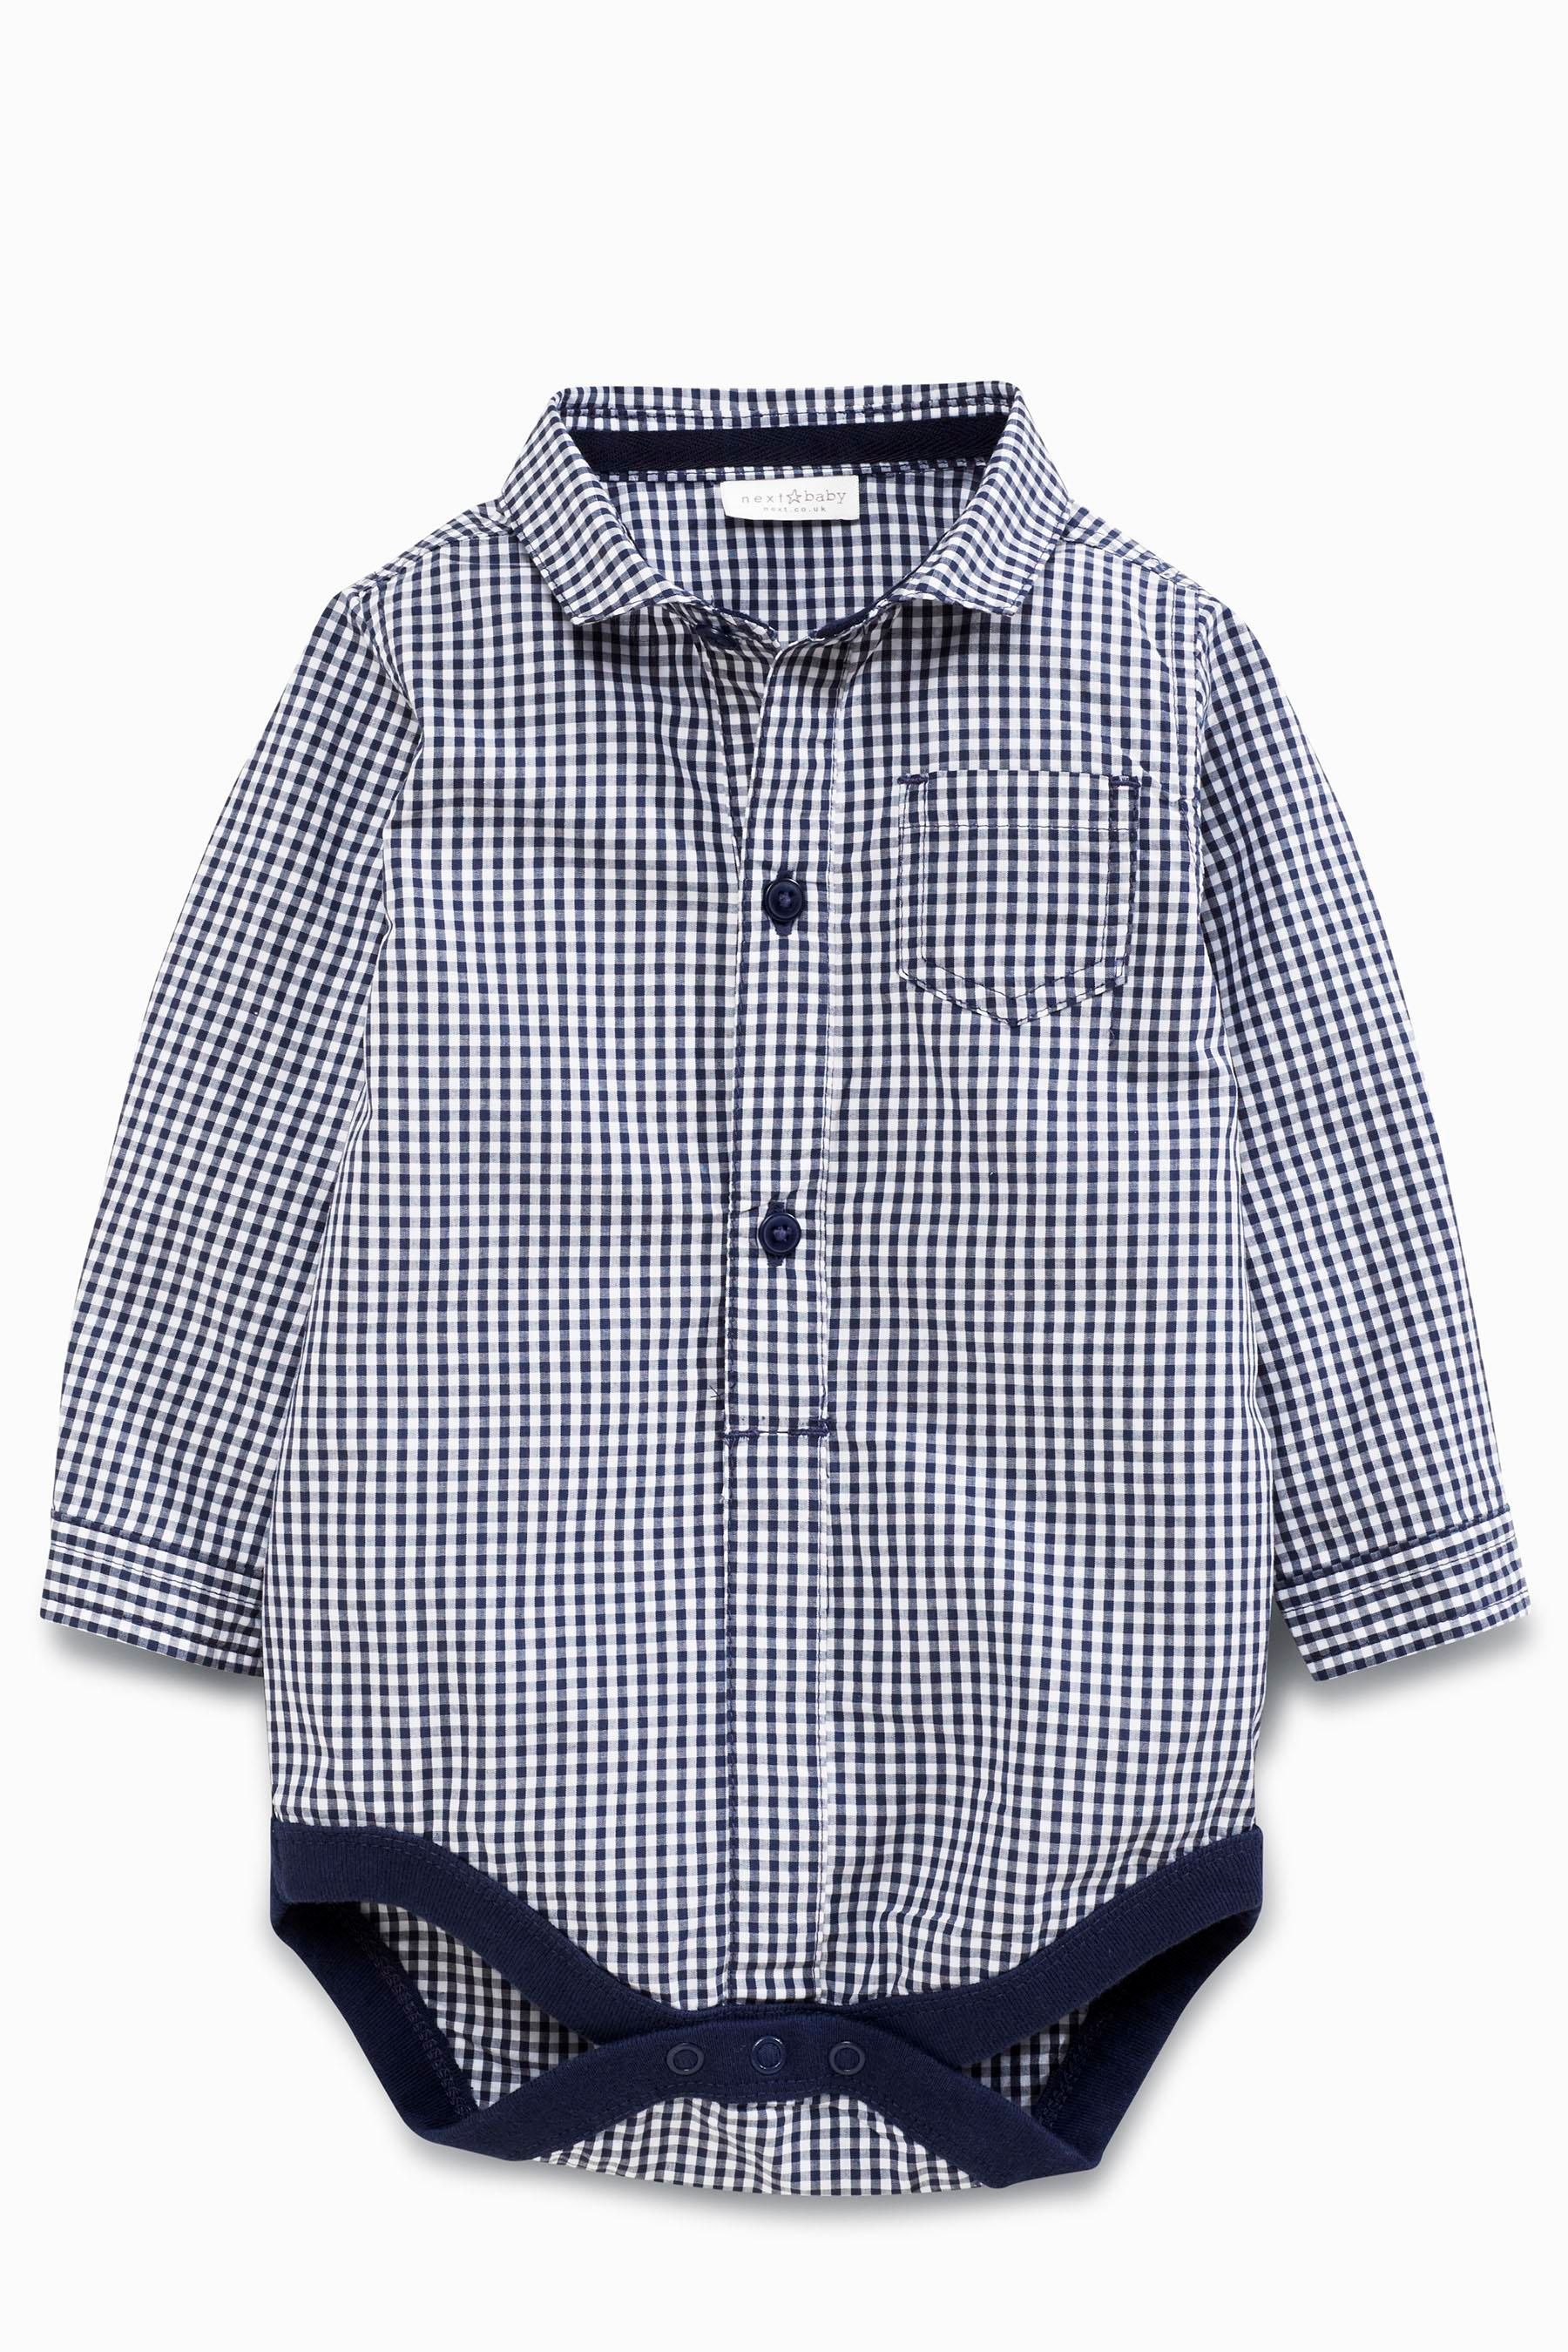 Buy Navy Gingham Shirtbody 0mths 2yrs online today at Next Japan